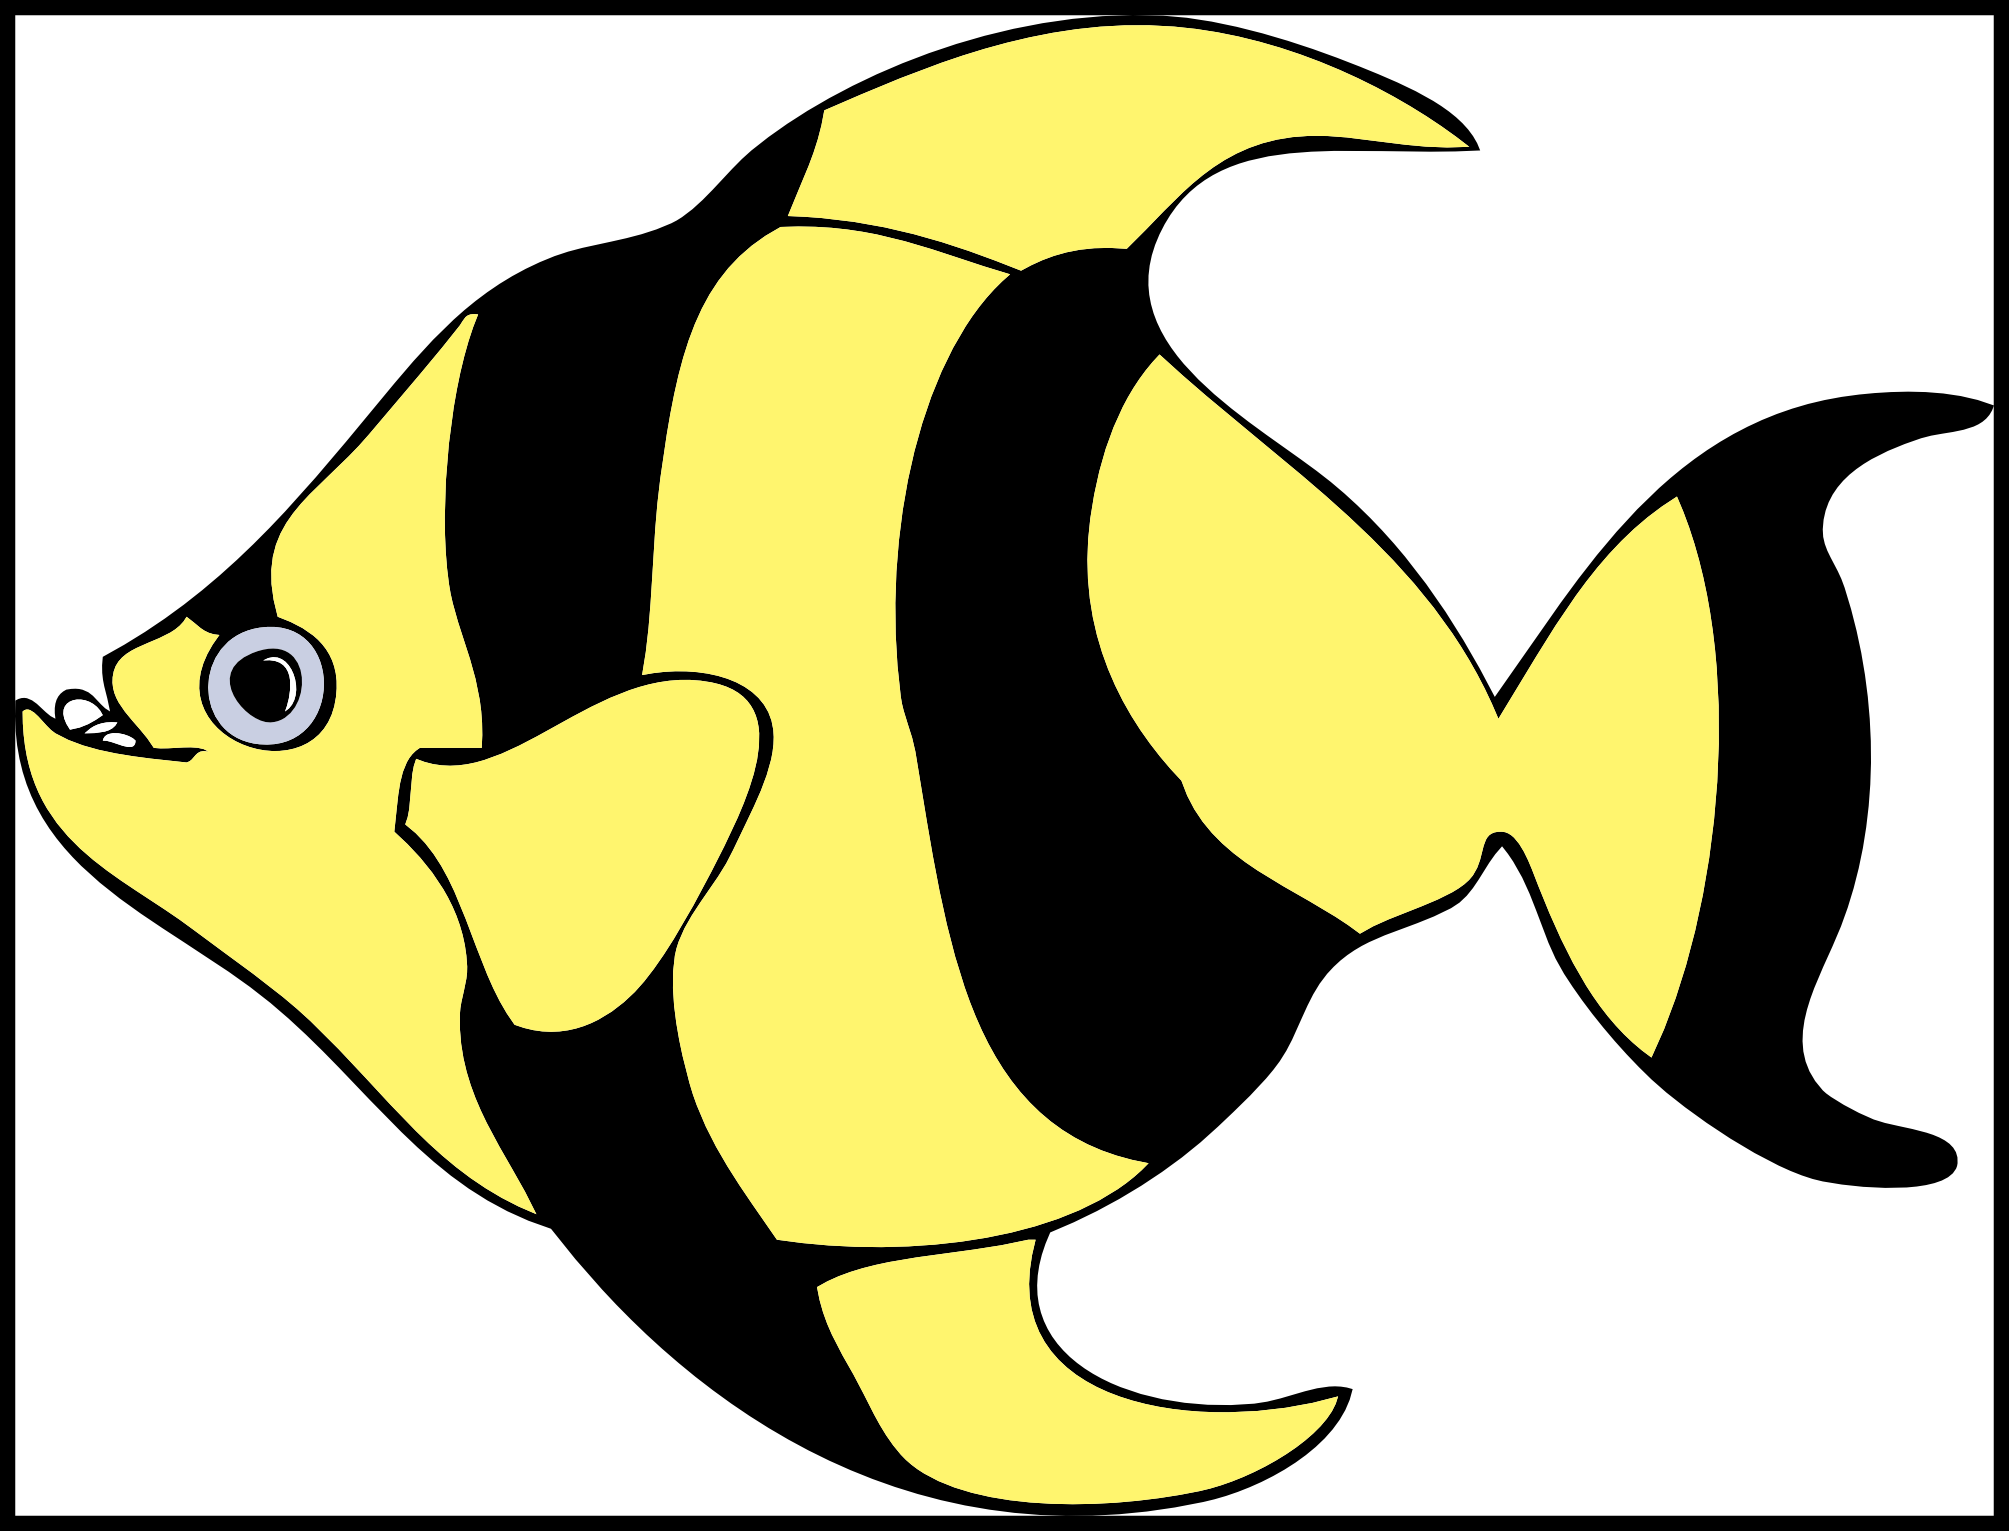 Blue tang fish clipart outline image black and white download Best Blue Tang Fish Cartoon Vector Clipart Picture Of Butterfly ... image black and white download